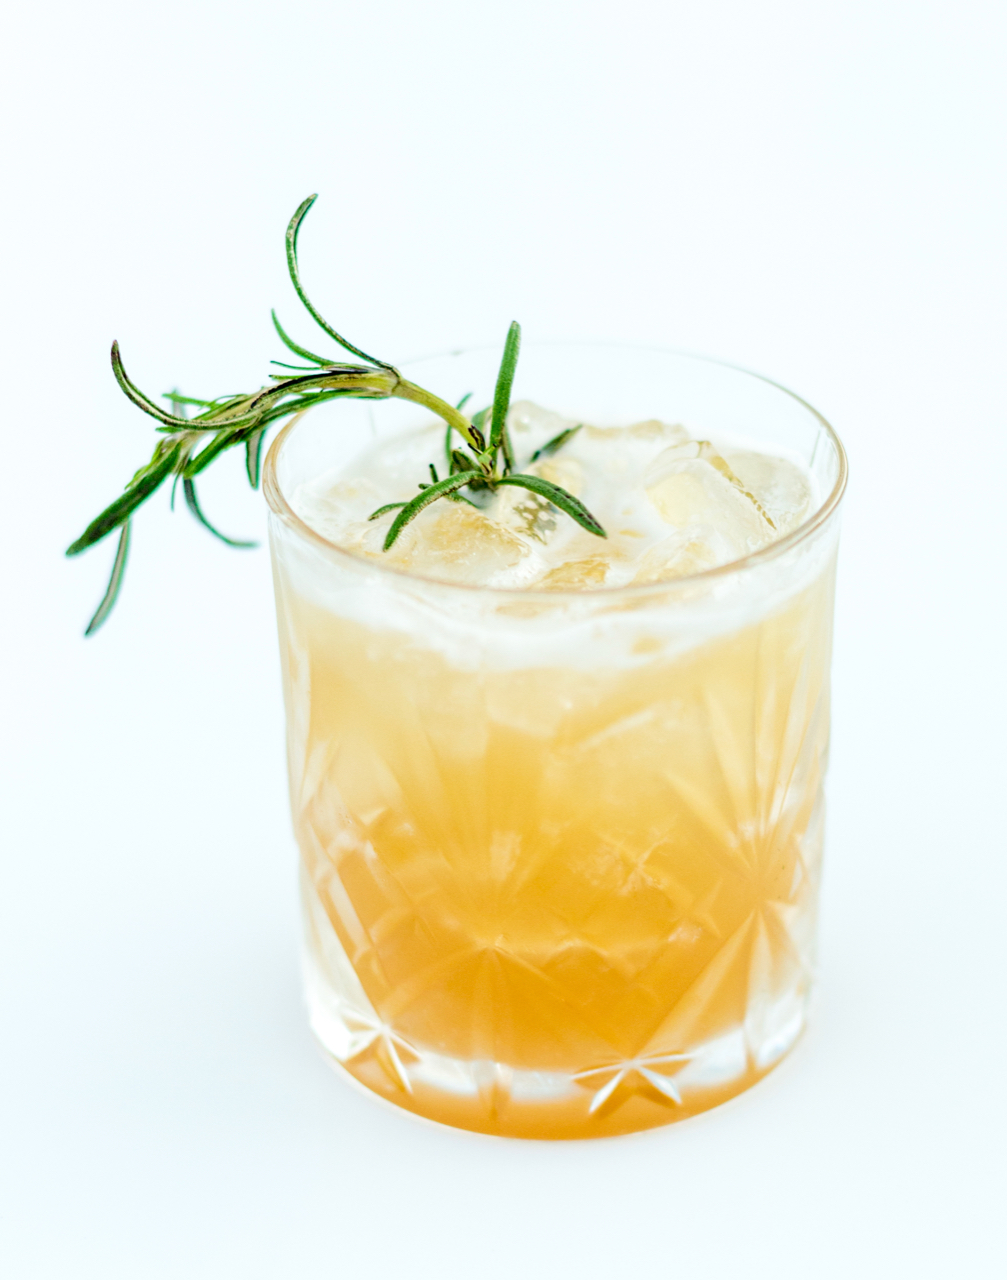 Libations By T.I. - Smoking Rosemary & Maple [Macallan Scotch Whisky, Maple Simple Syrup, Lemon, Burning Rosemary]